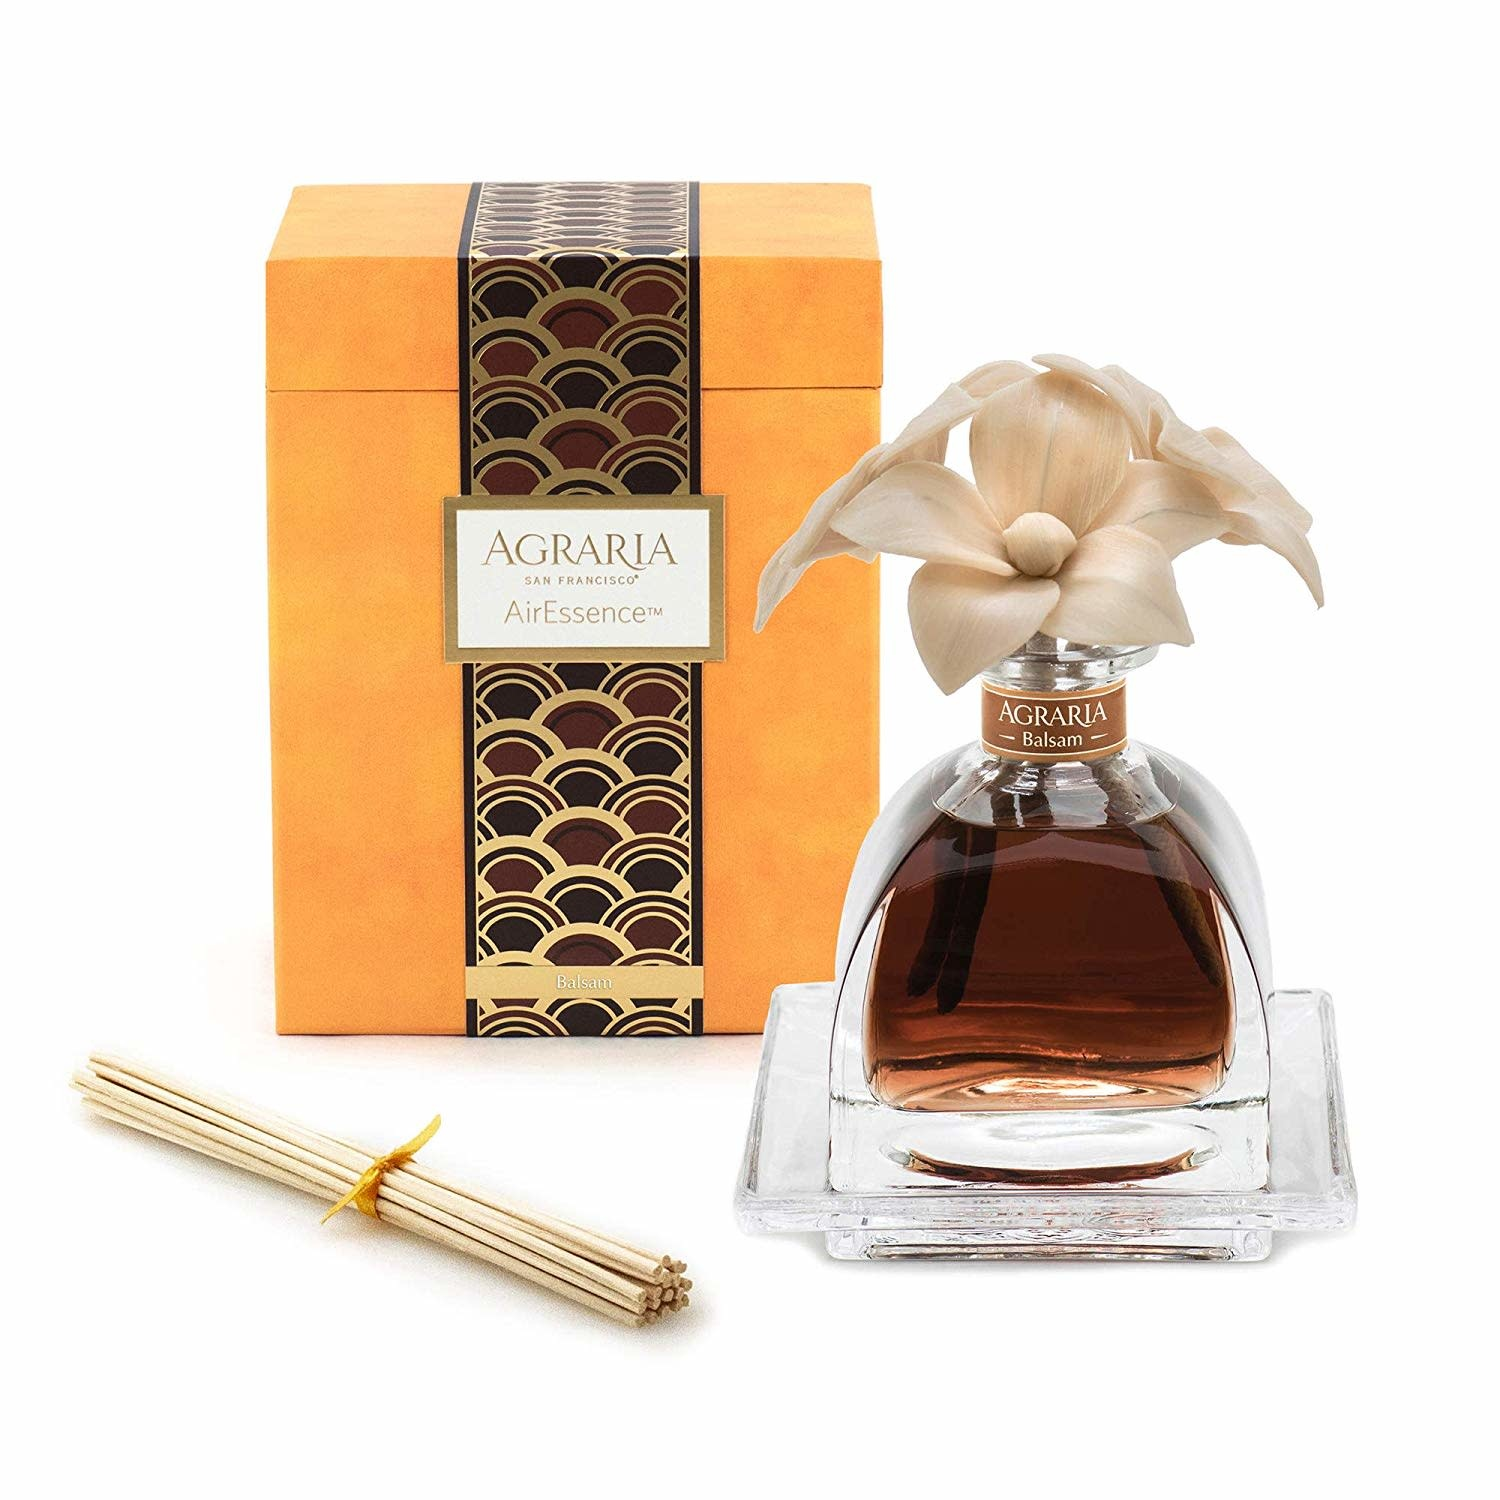 Agraria AirEssence Diffuser 7.4oz